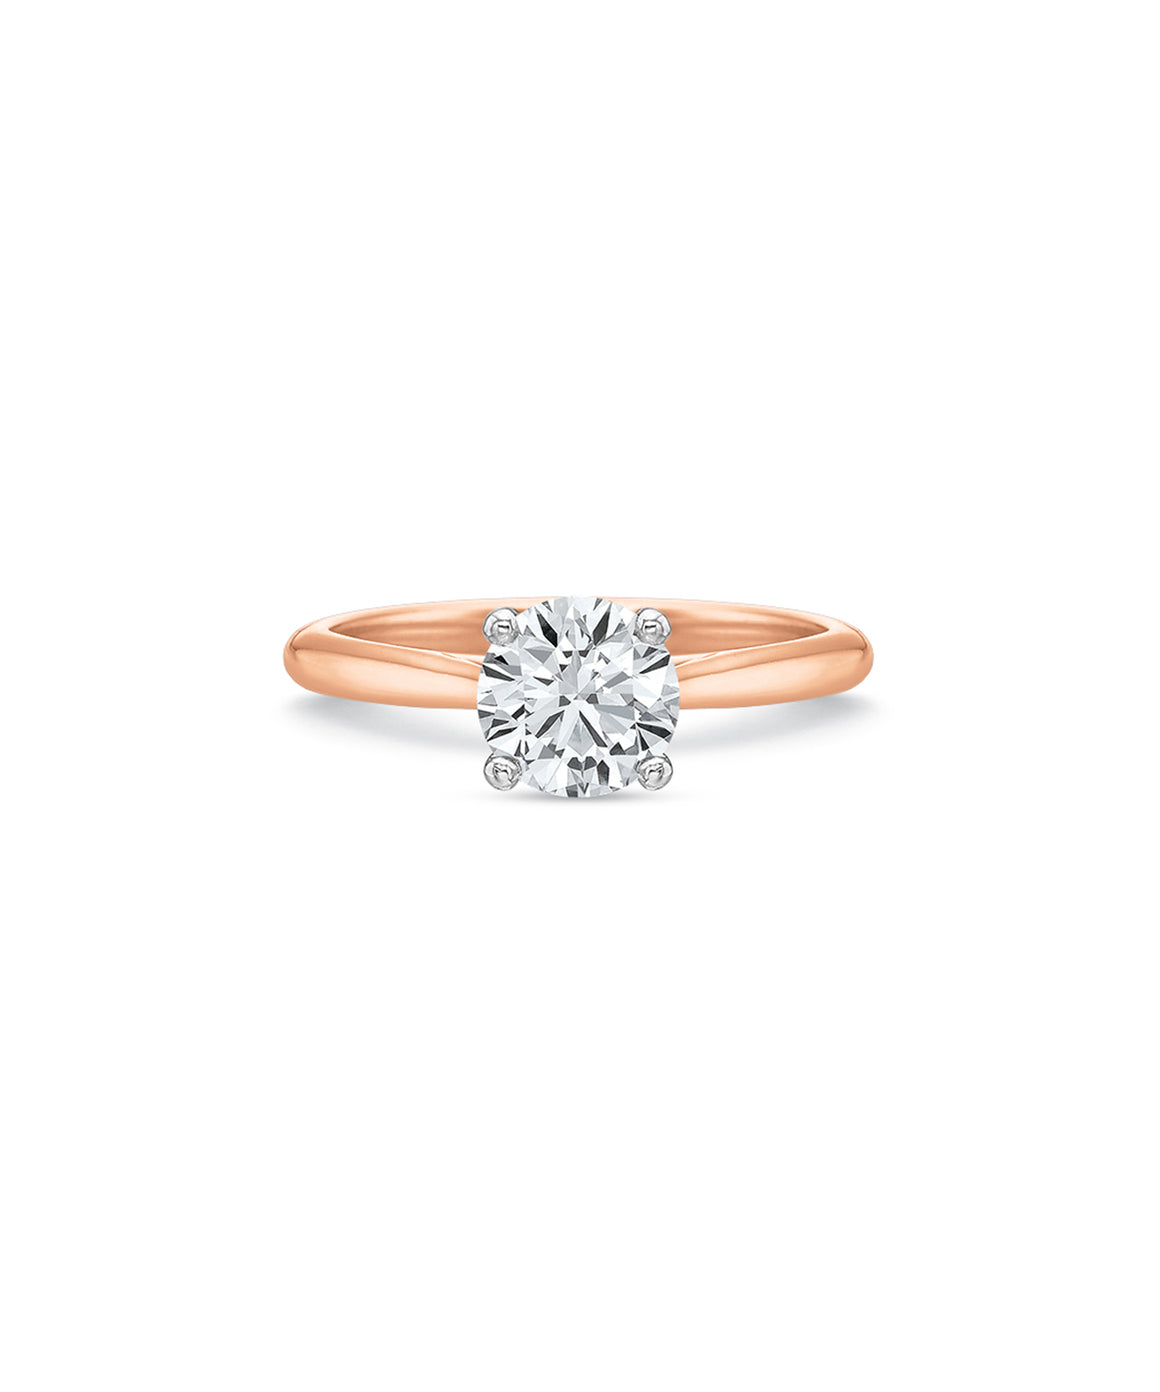 Simple Semimount in Rose Gold - Lesley Ann Jewels